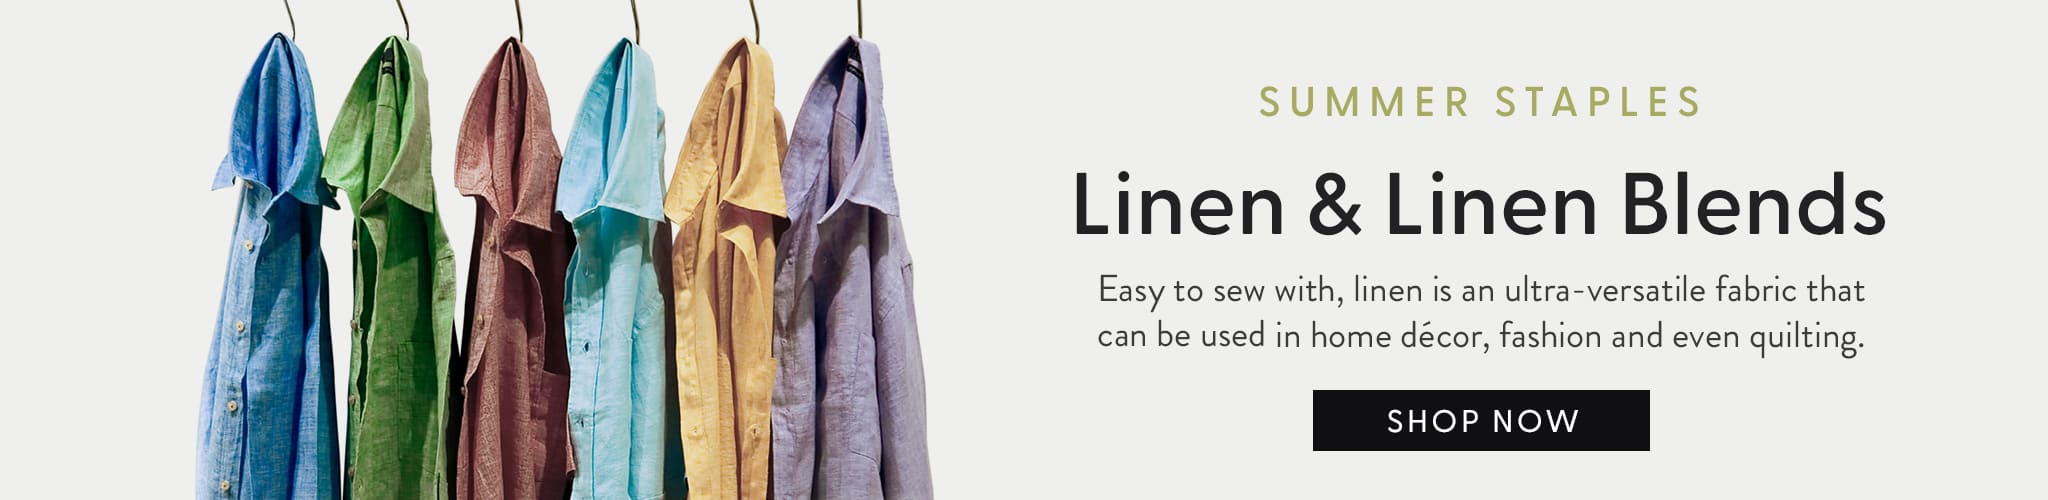 Summer Staples. Linen & linen Blends. Easy to sew with, linen is an ultra versatile fabric that can be used in home decor, fashion, and even quilting.